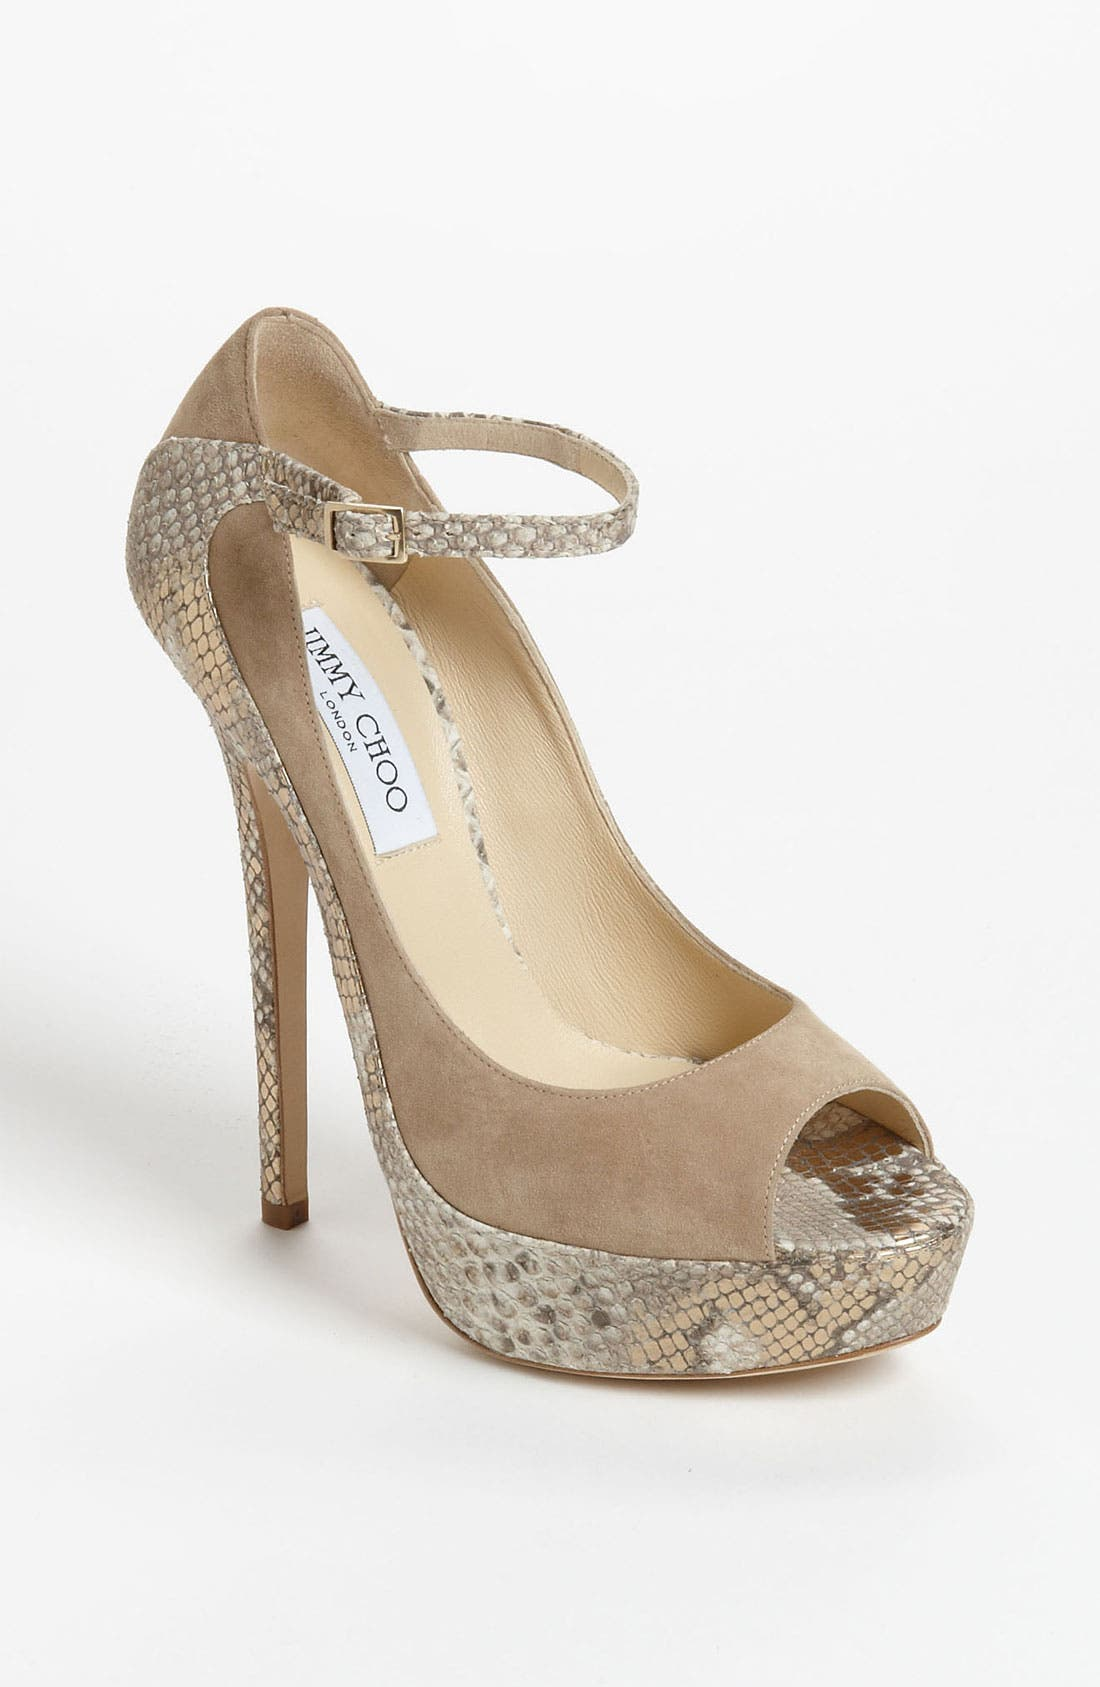 Main Image - Jimmy Choo 'Tali' Pump